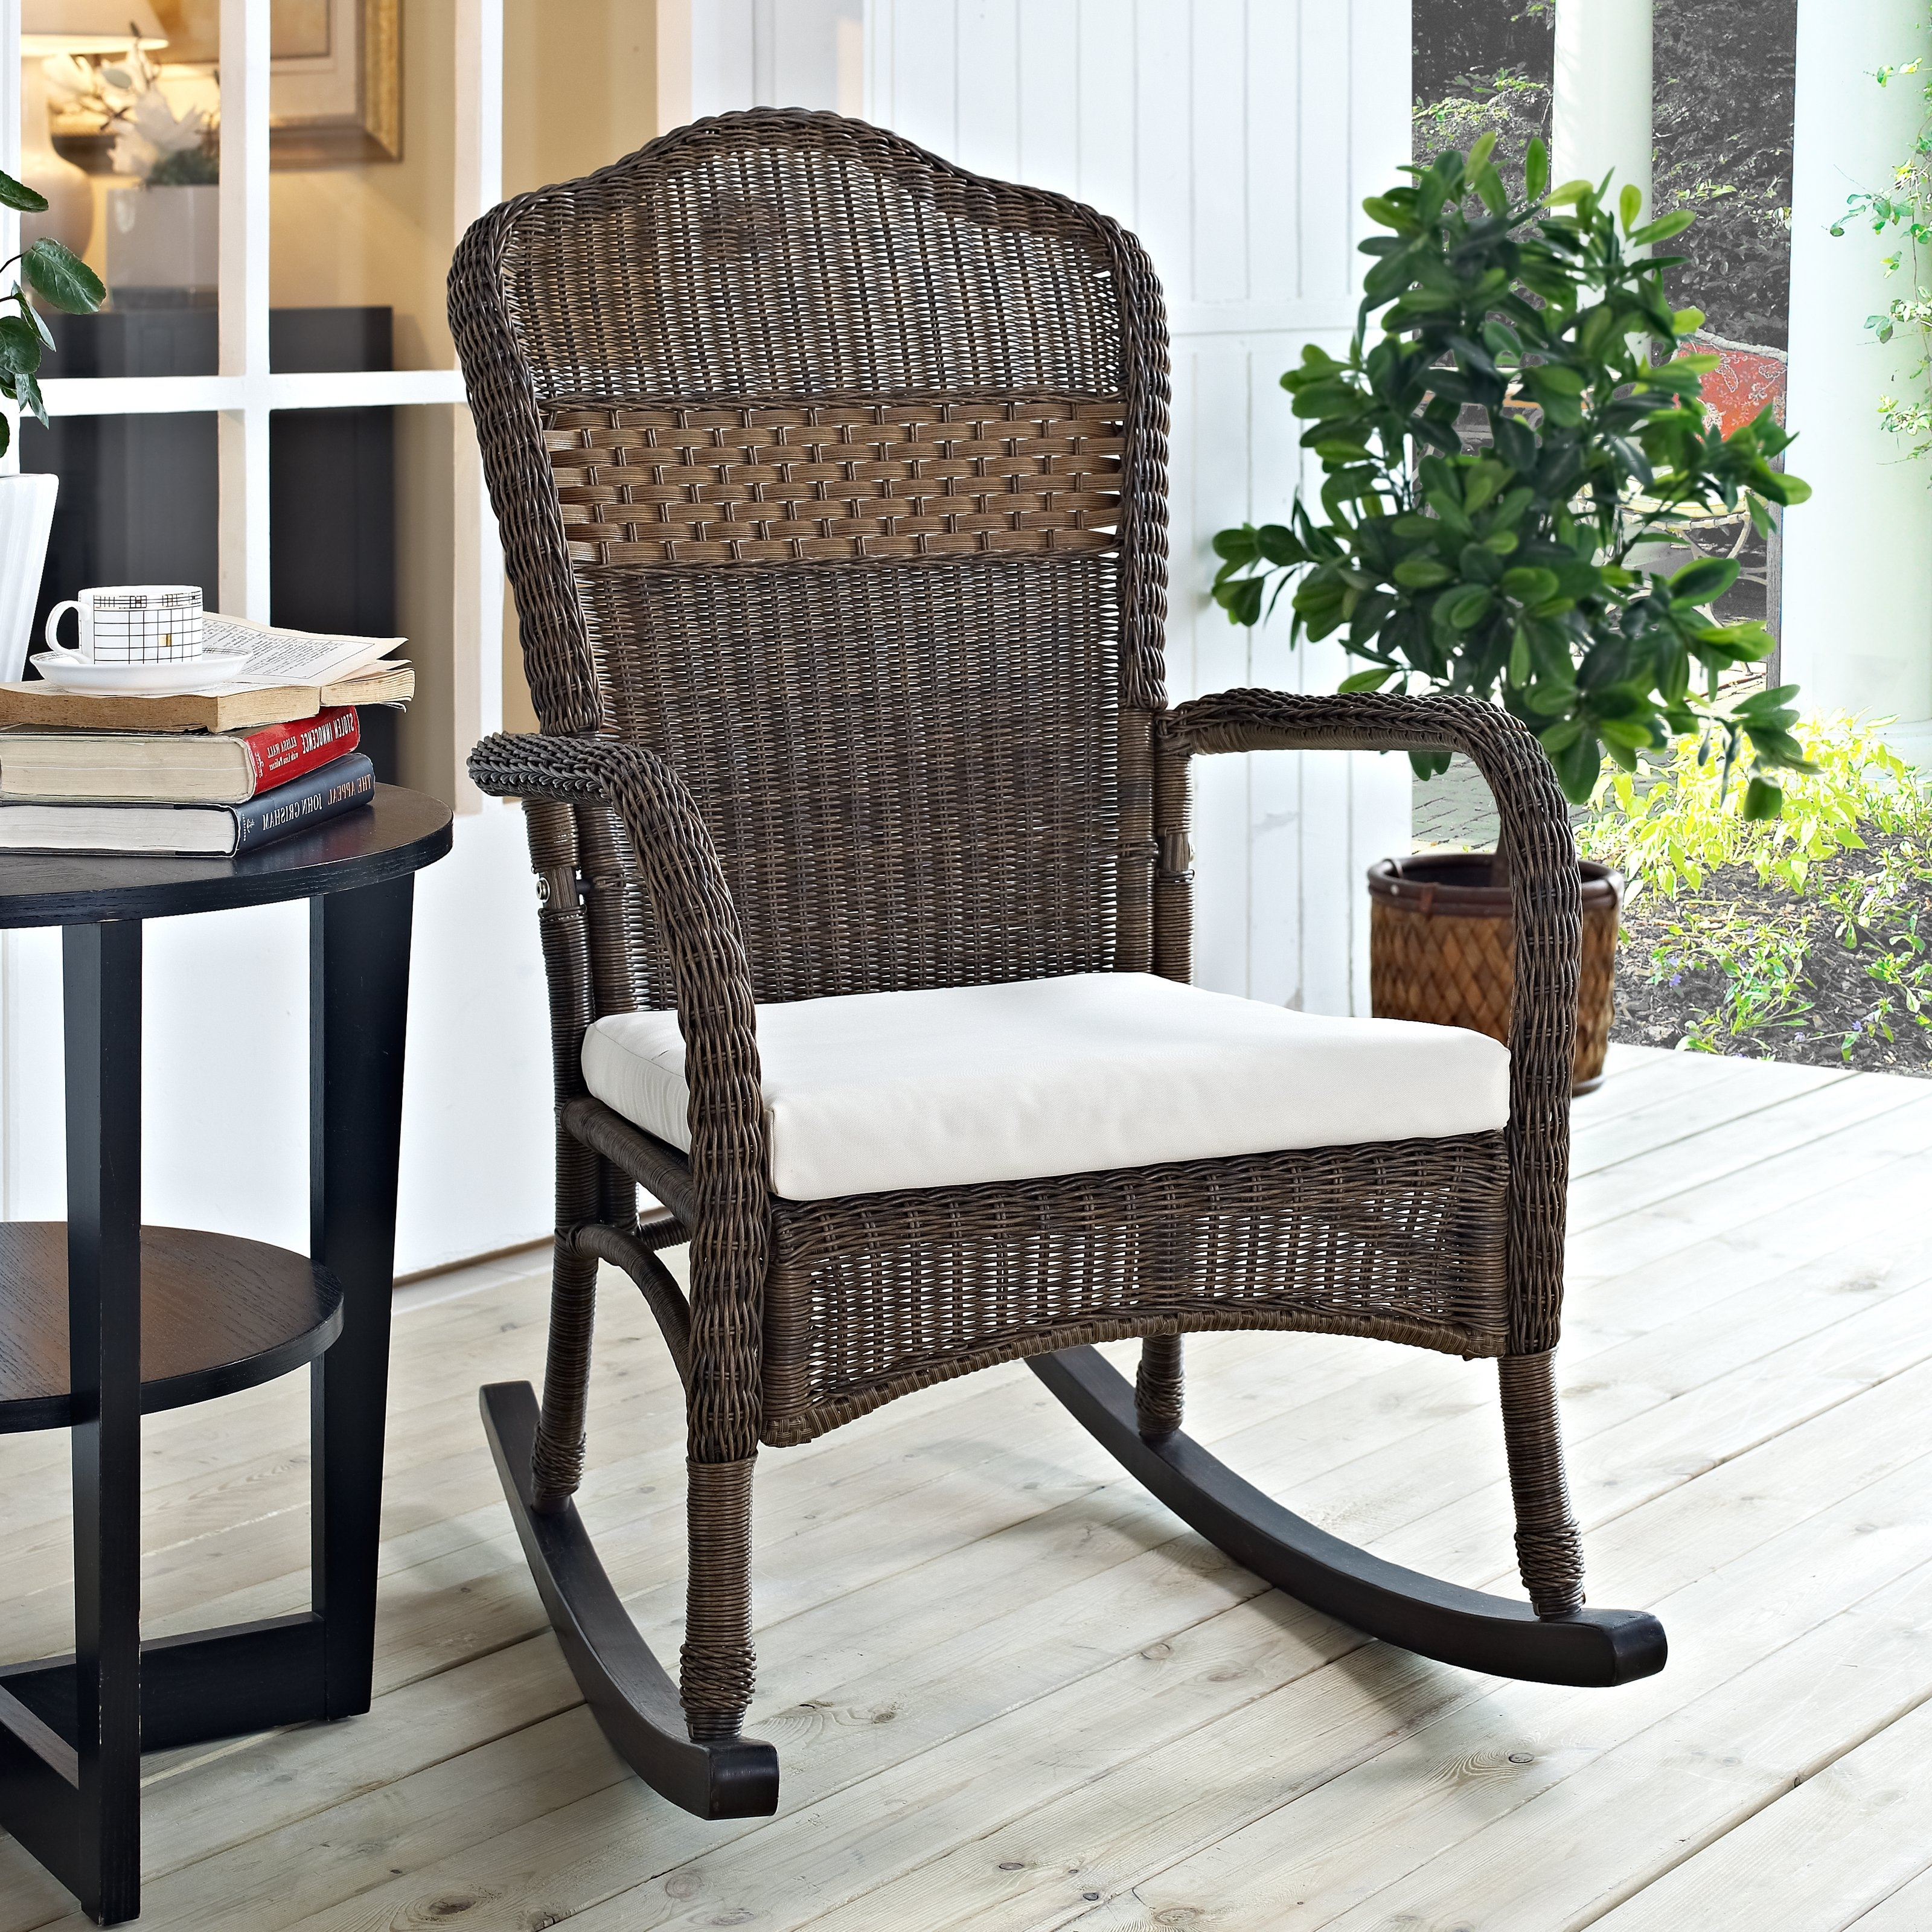 Magnificent Wicker Outdoor Rocking Chair 3 Master Cwr368 With Regard To Newest Outside Rocking Chair Sets (View 13 of 20)